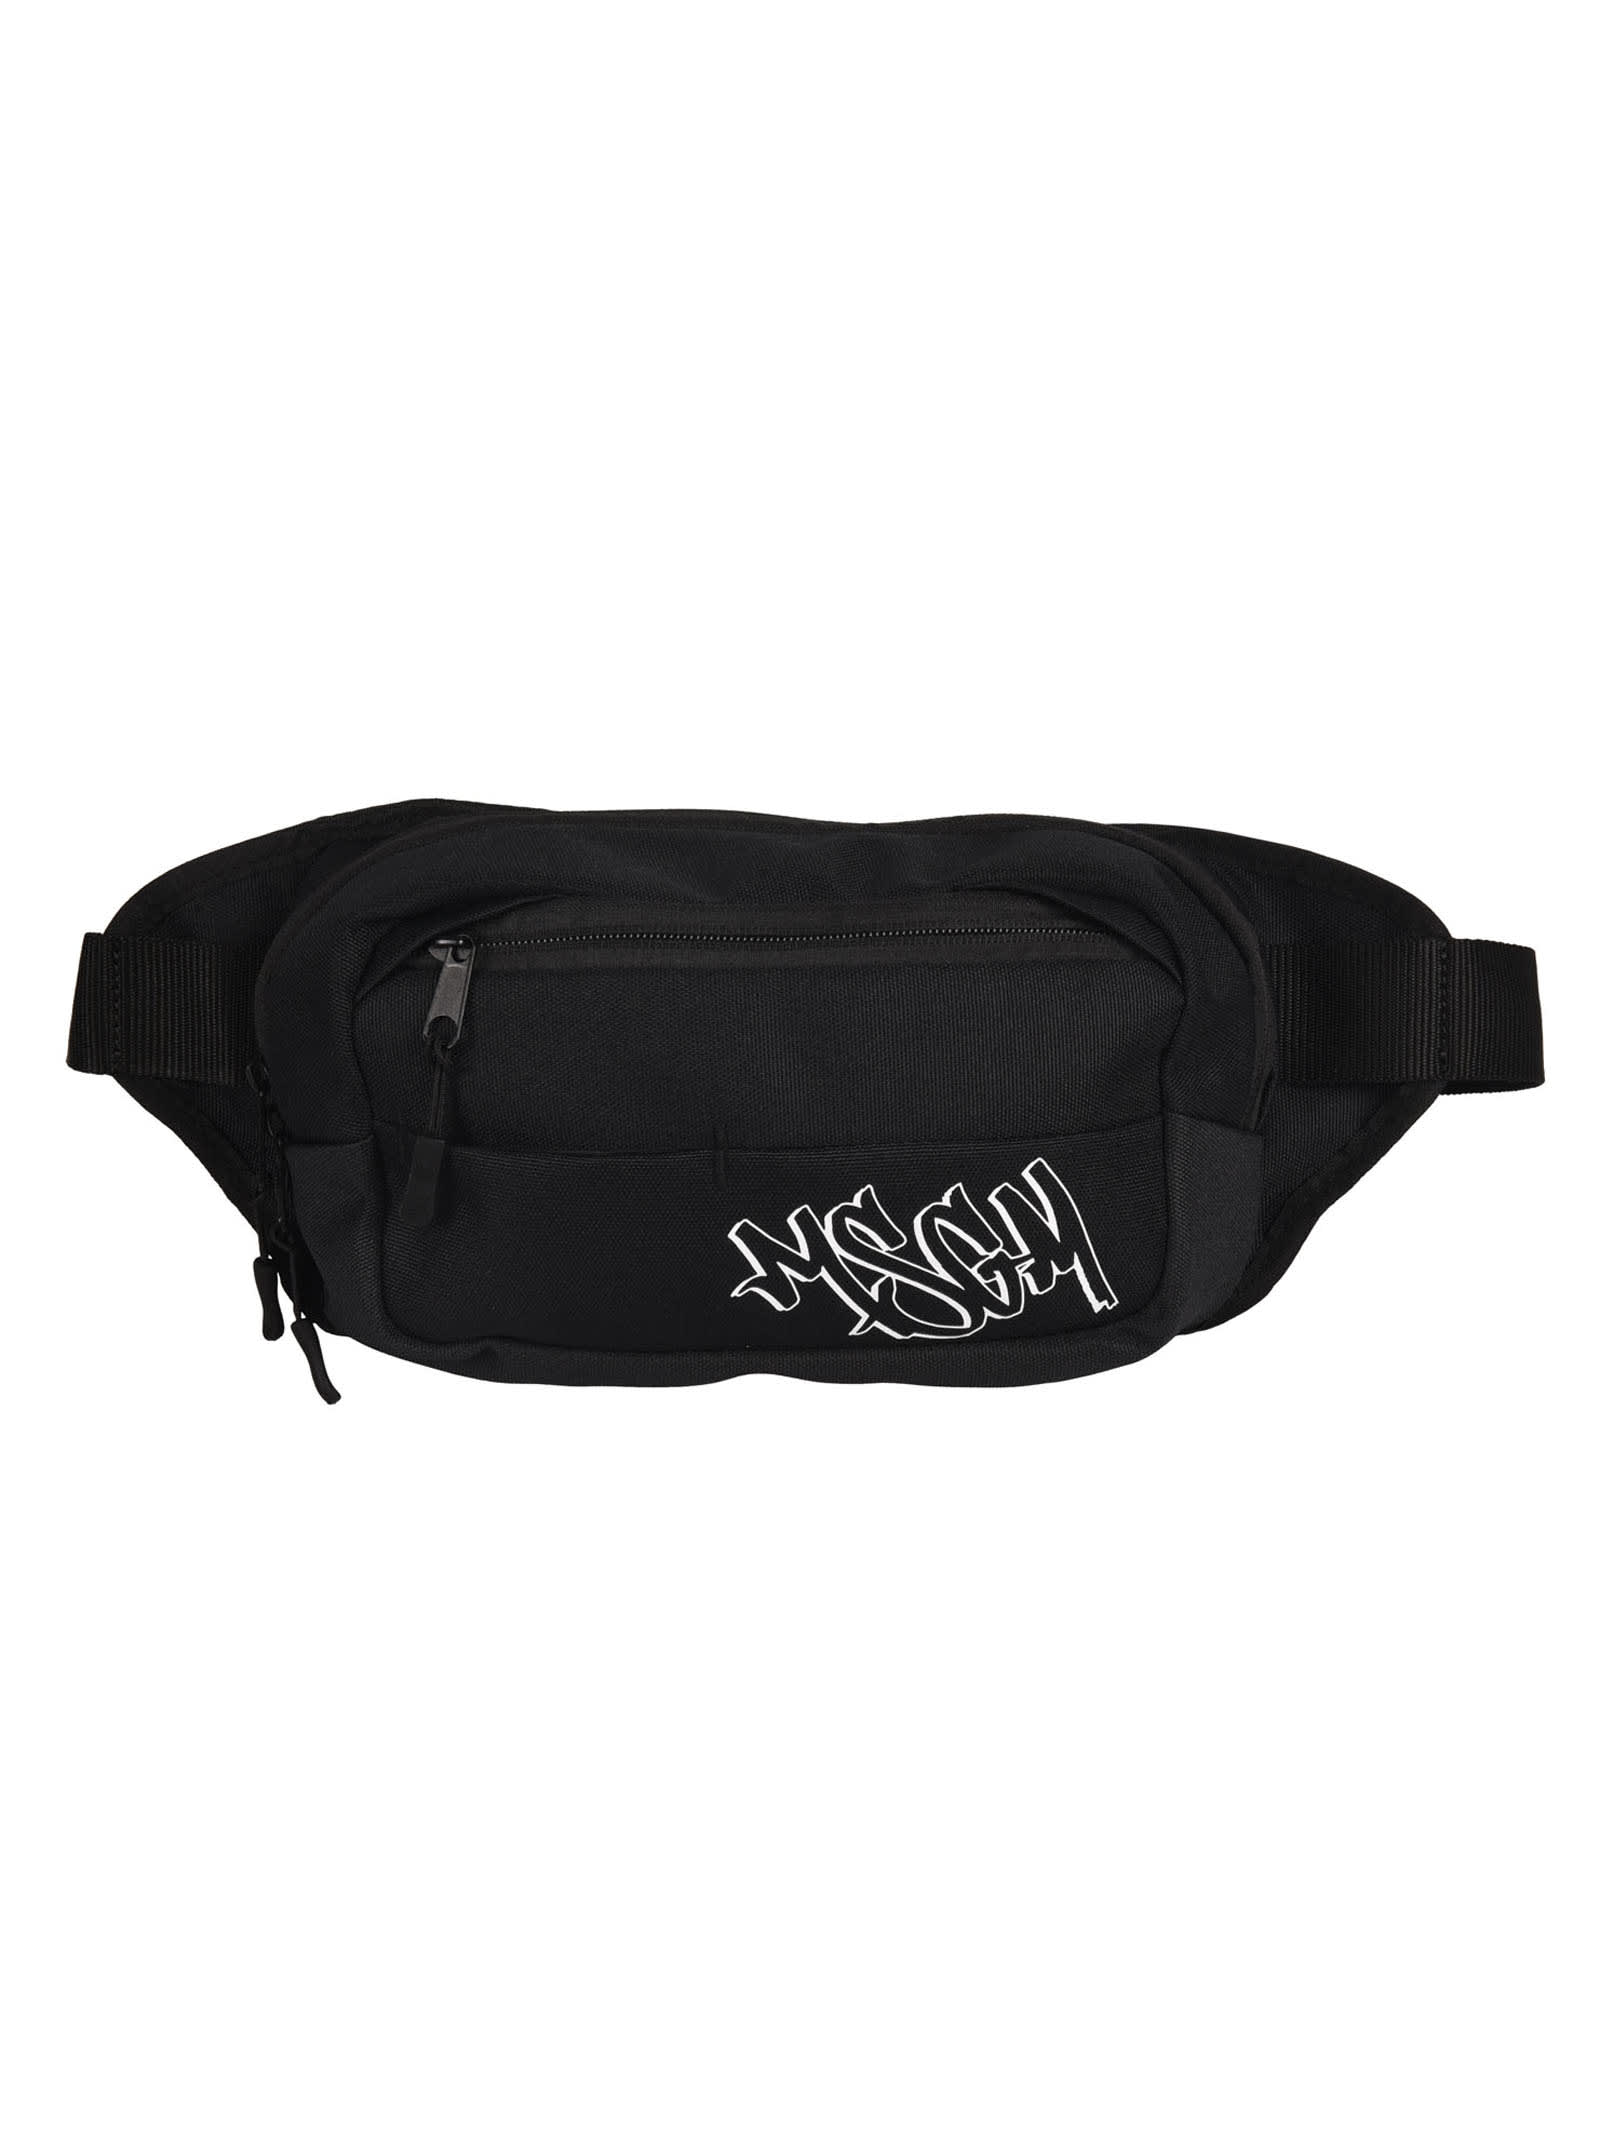 Msgm GRAFFITI LOGO PRINT BELT BAG